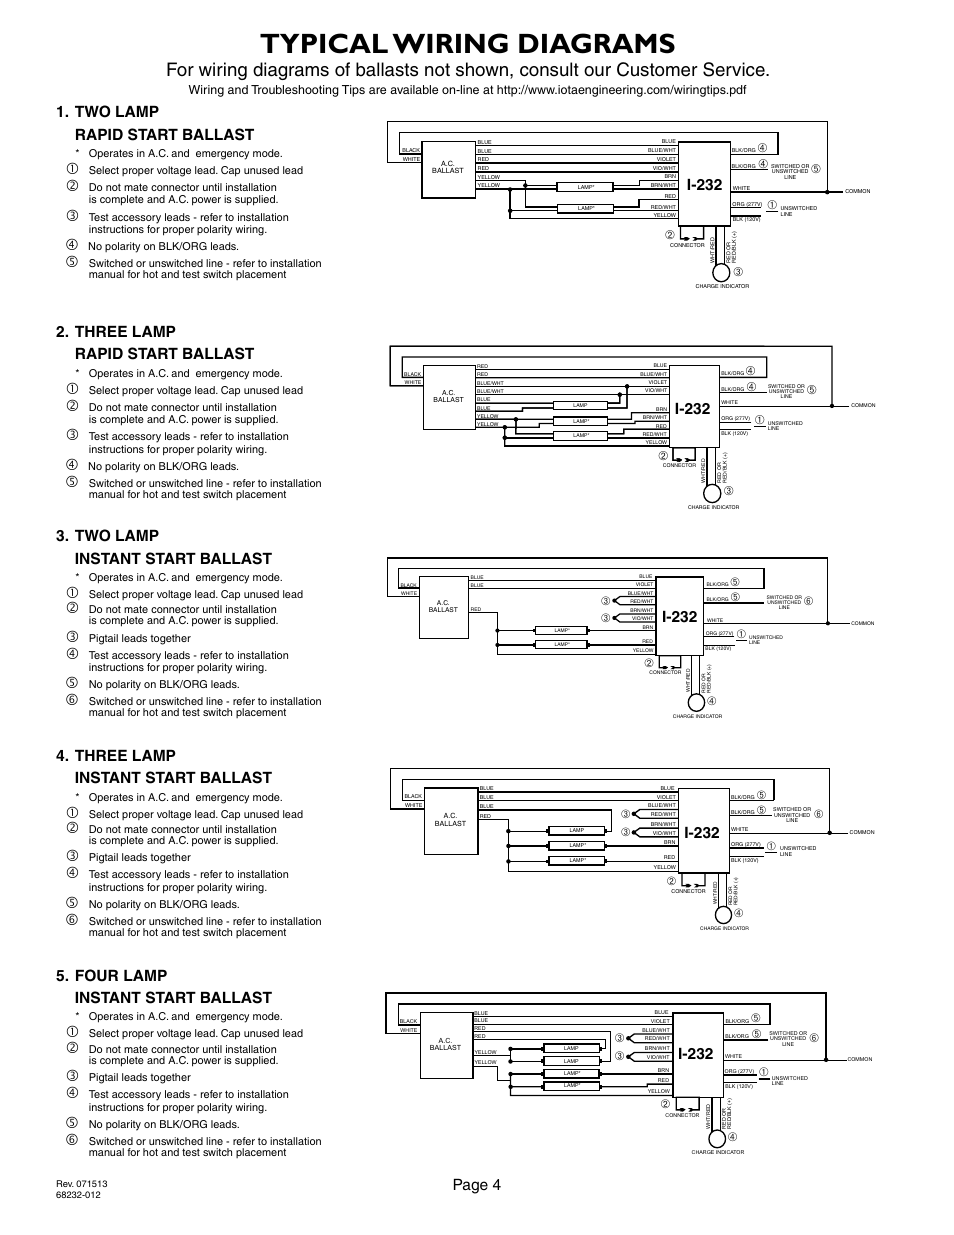 iota i 232 page4 typical wiring diagrams, page 4, i 232 iota i 232 user manual emergency ballast wiring diagram at bayanpartner.co